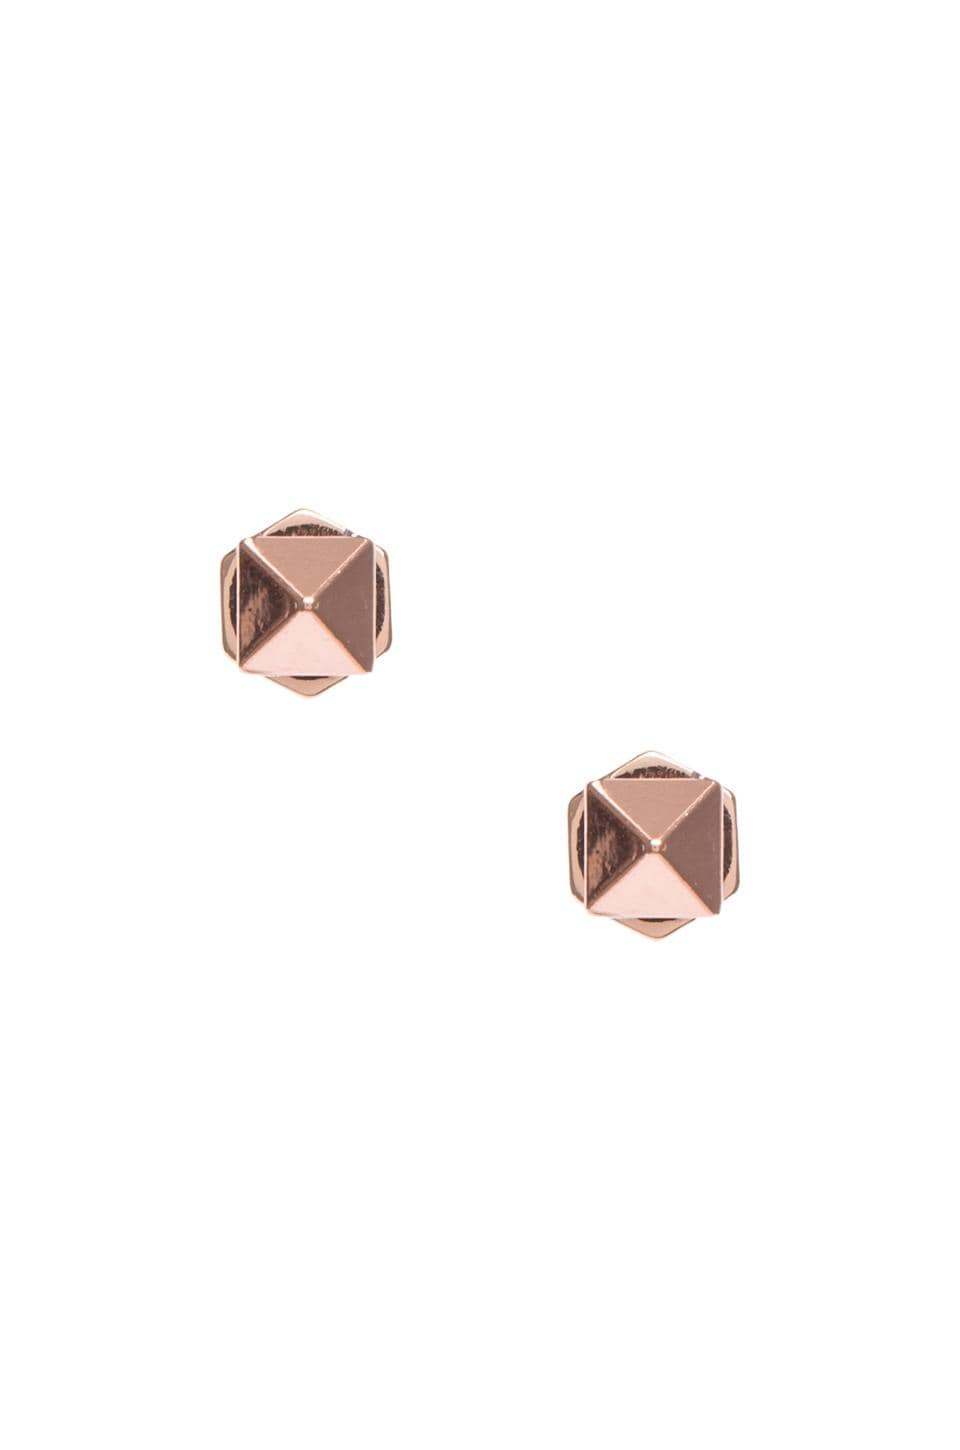 Marc by Marc Jacobs Tiny Studs in Rose Gold